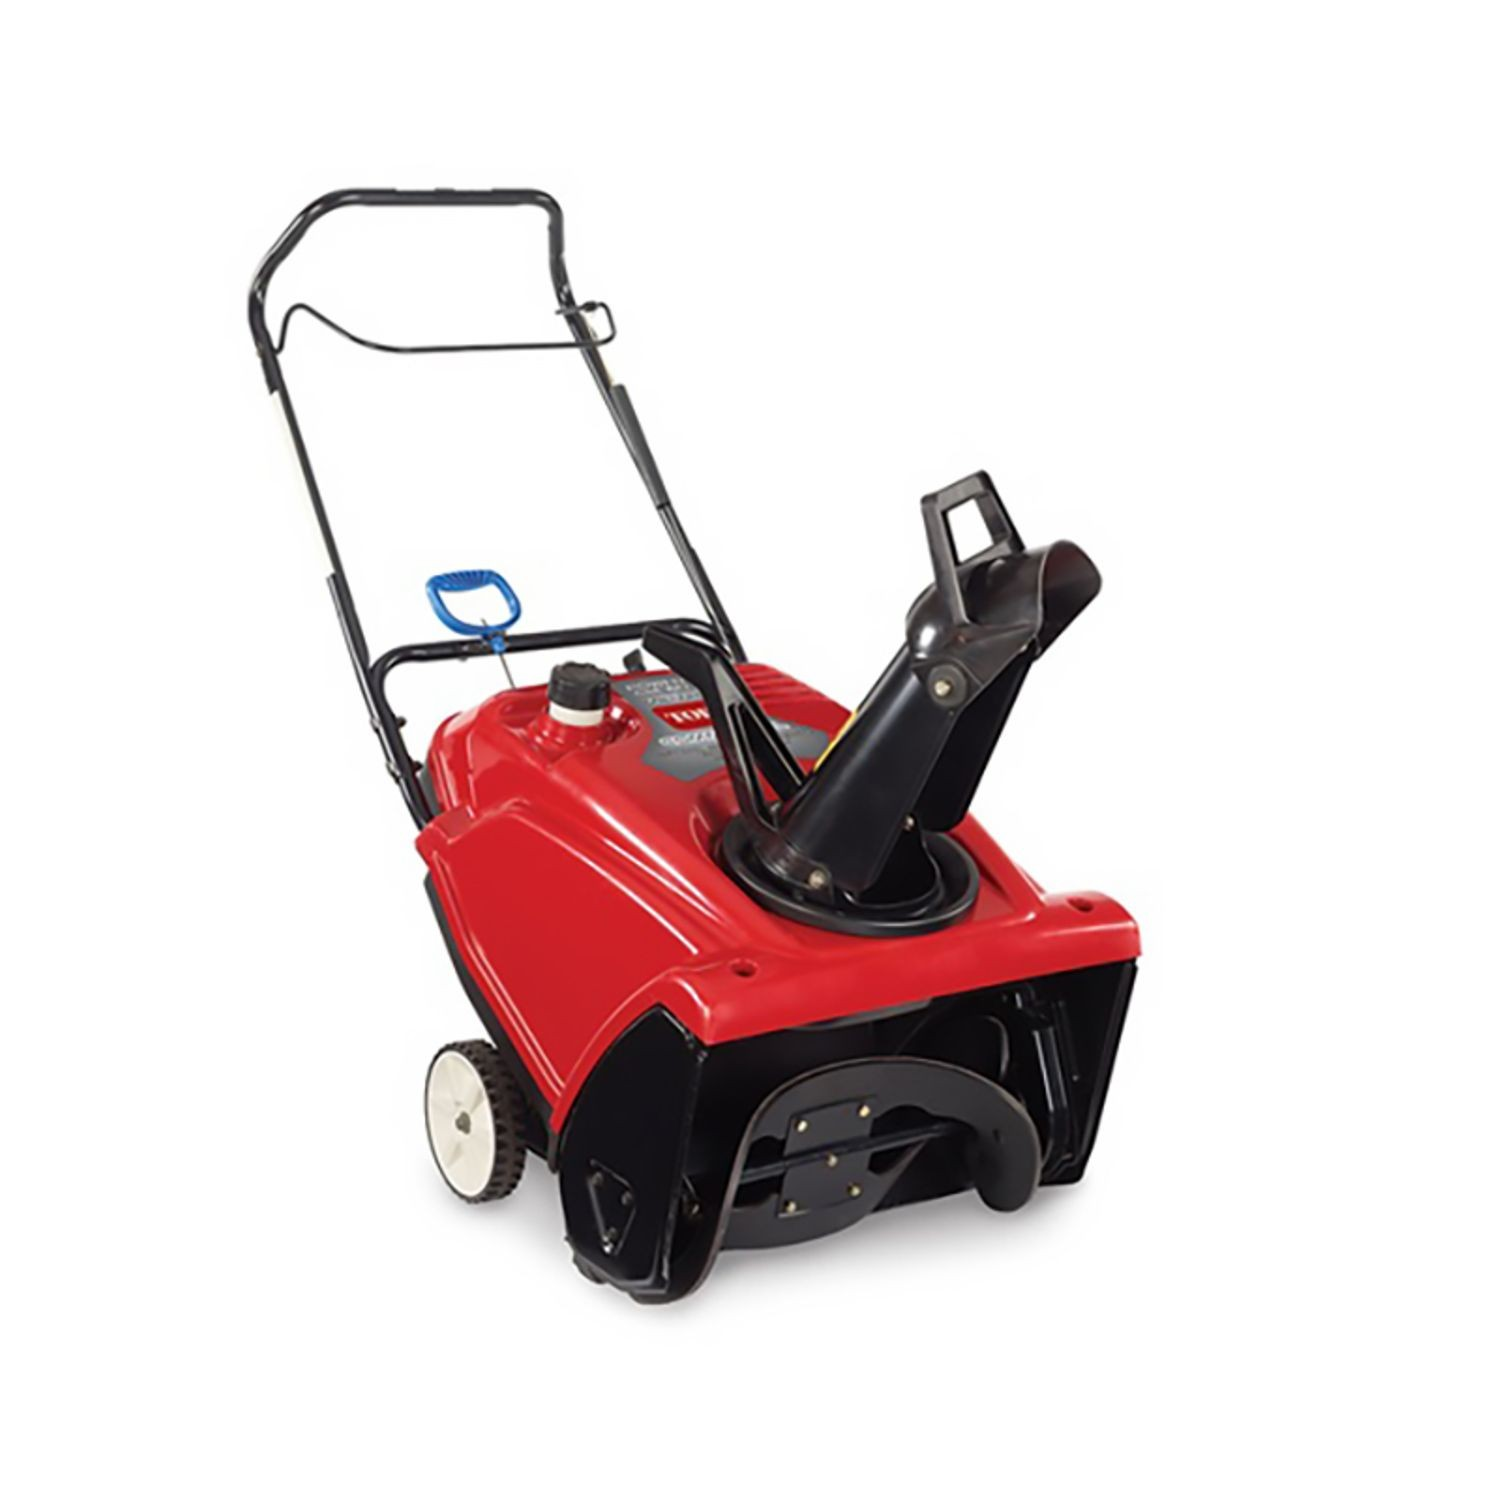 hight resolution of toro 721 r c power clear commercial snow blower with recoil start 212cc 4